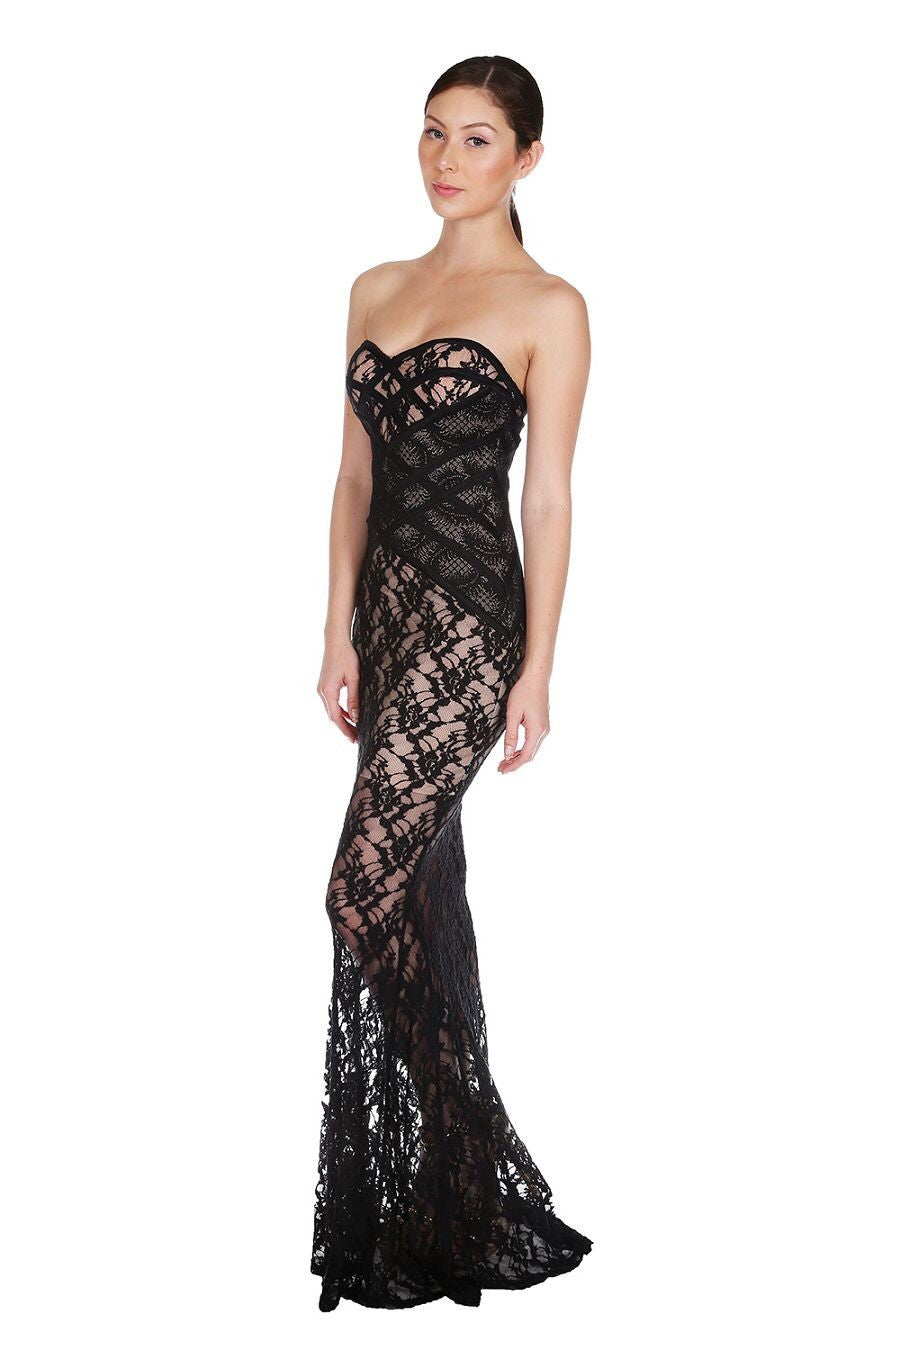 Naughty Grl Evening Lace Maxi Dress - Black - NaughtyGrl